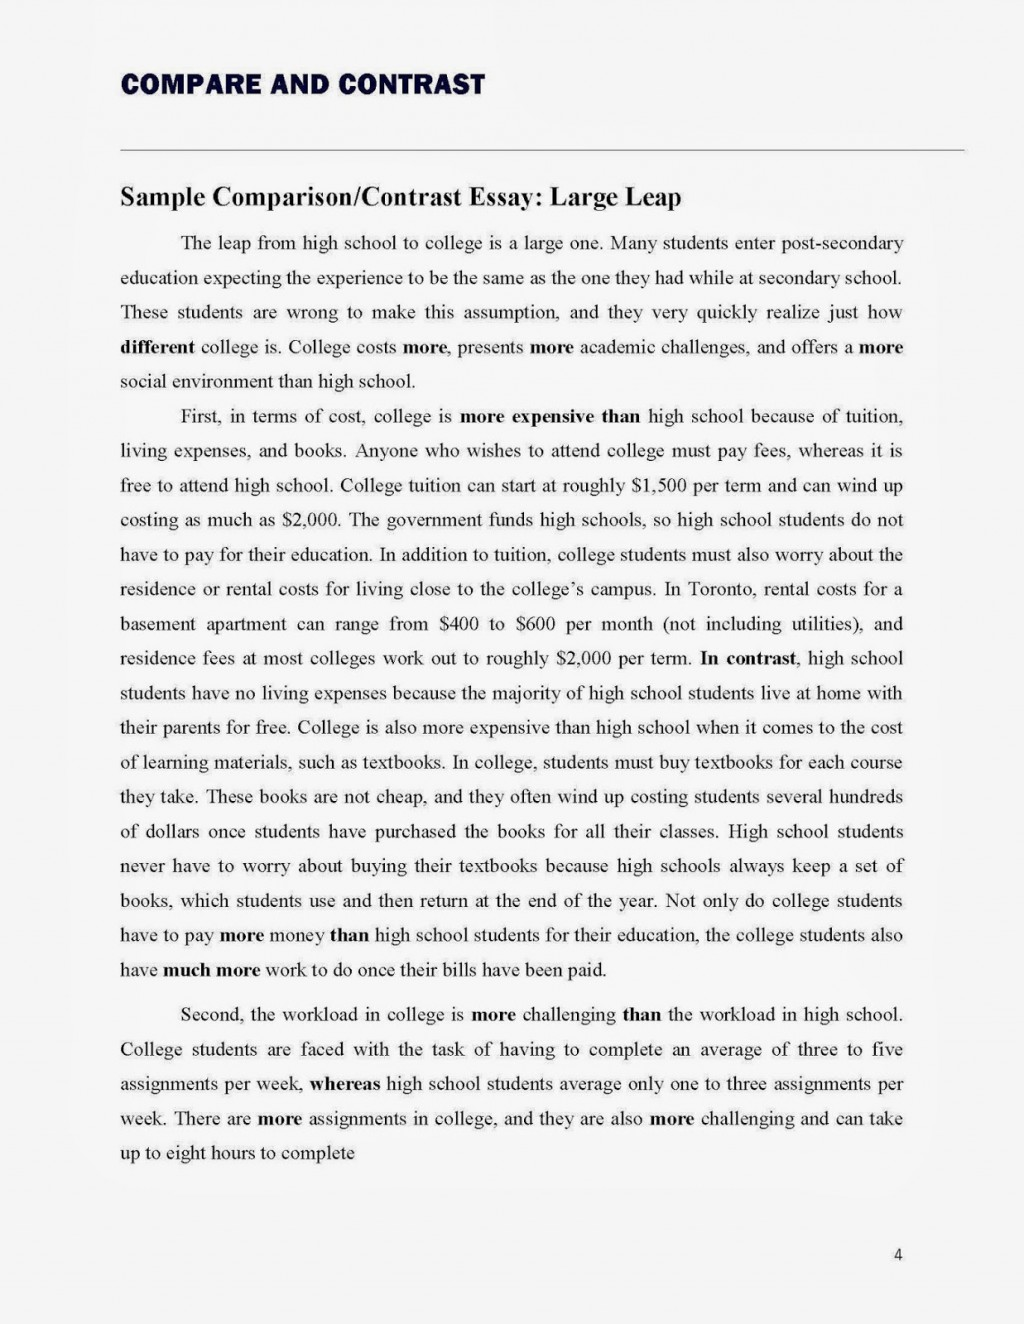 008 Essay Example Conclusion For Compare And Contrast Compare2band2bcontrast2bessay Page 4 Awesome How To Write A Paragraph Examples Large